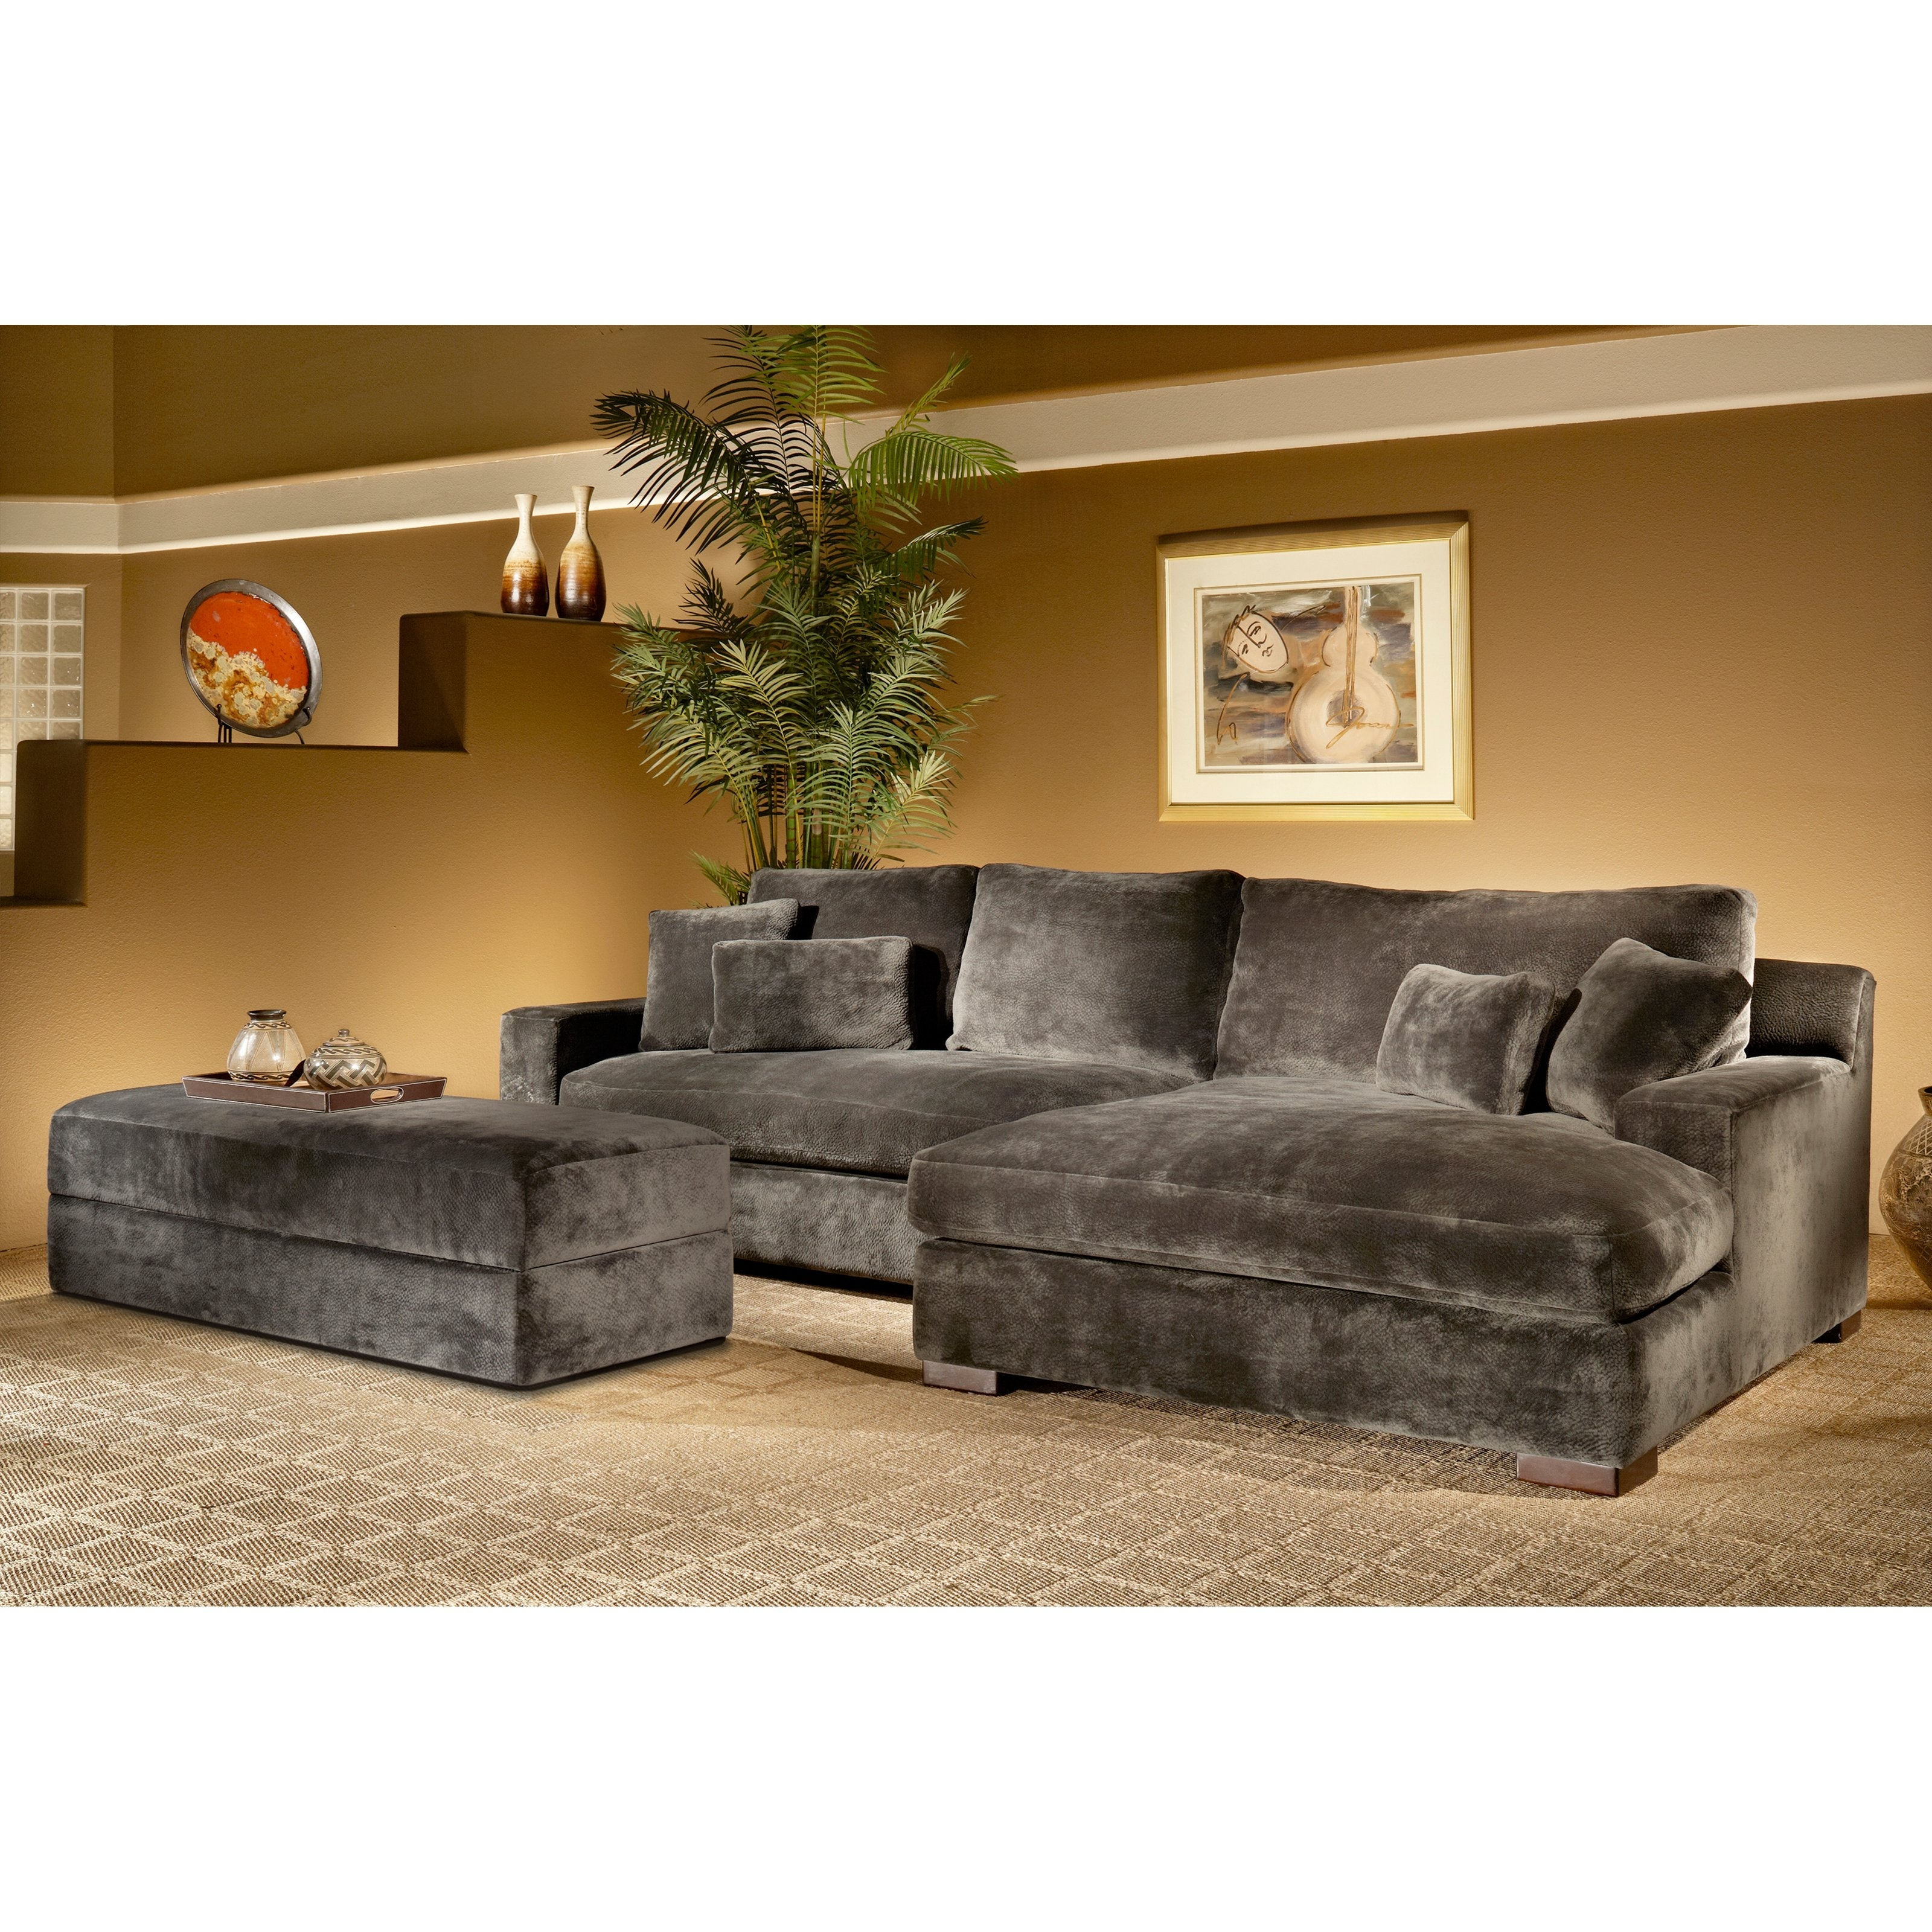 Fairmont Designs Doris 2 Piece Sectional Sofa With Storage Ottoman With Regard To Well Known Sectional Sofas With Storage (View 3 of 15)